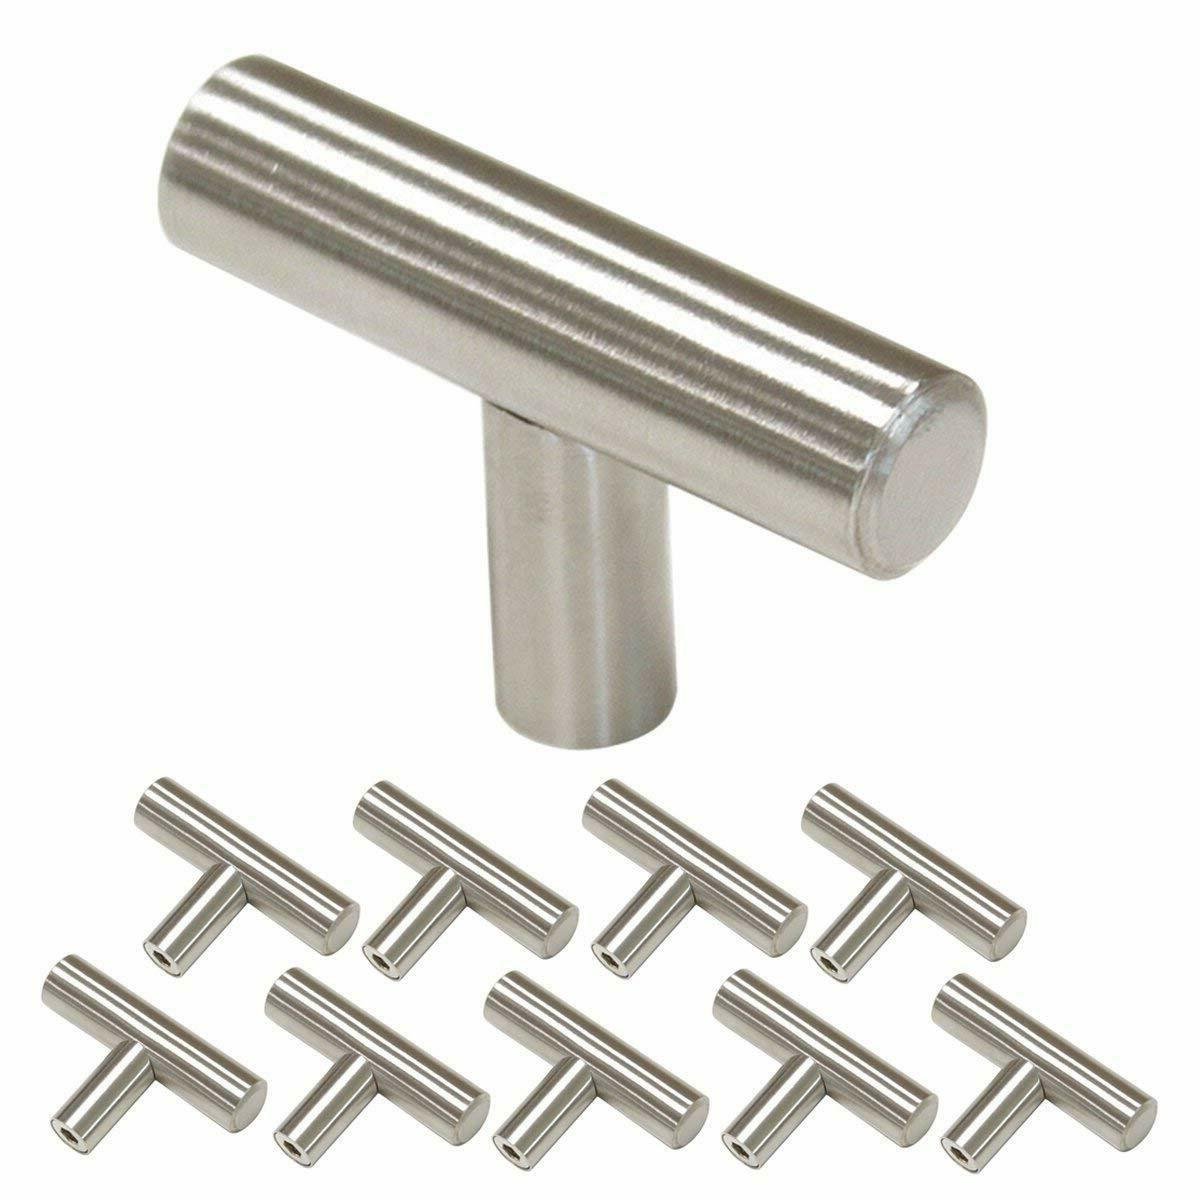 3 inch Cabinet Handles Brushed Nickel 76mm Drawer Pulls Kitc